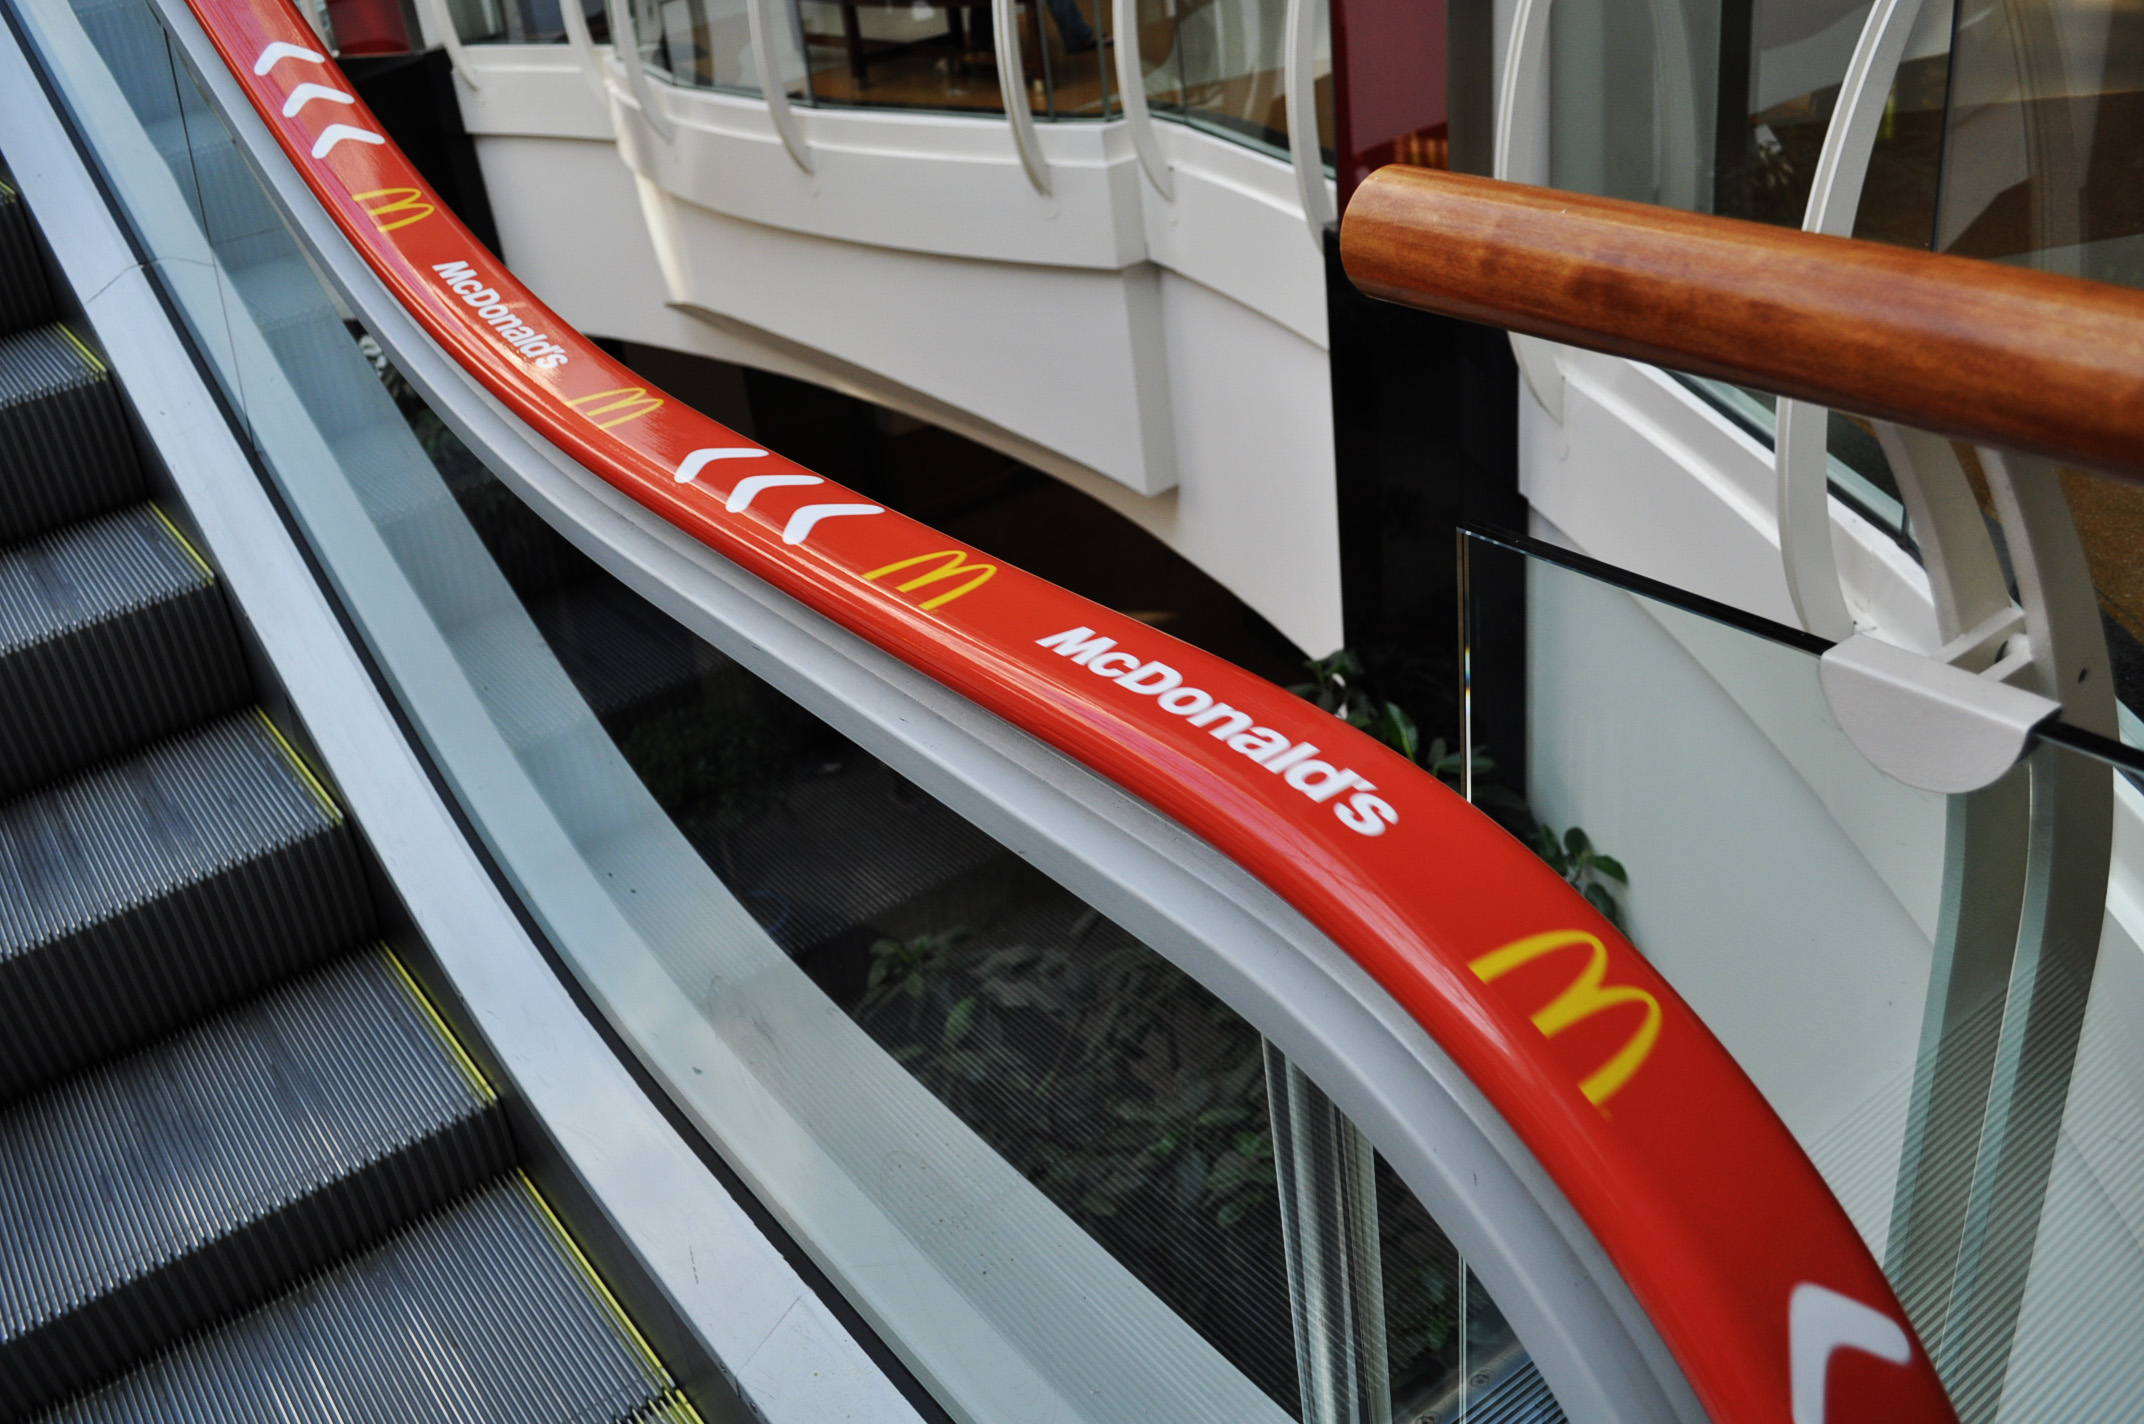 adrail_campaign_for_mcdonalds_spain-jpg